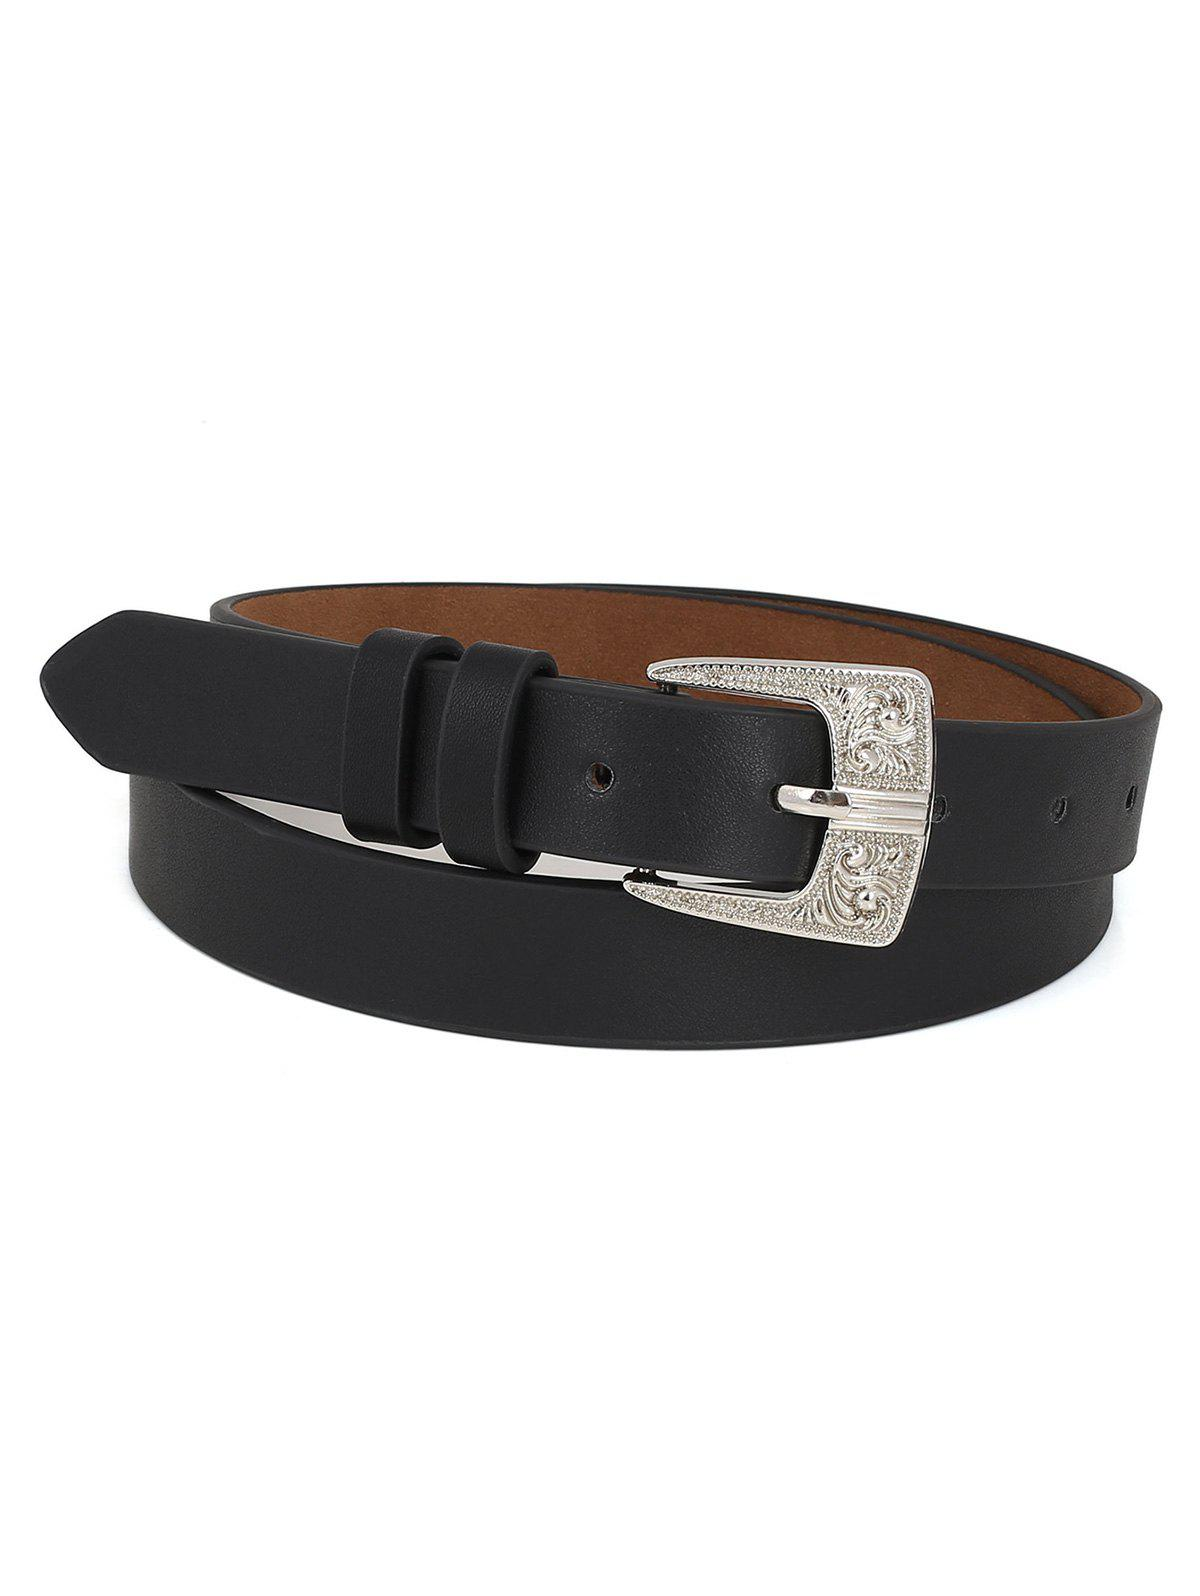 Store PU Leather Carving Pin Buckle Waist Belt